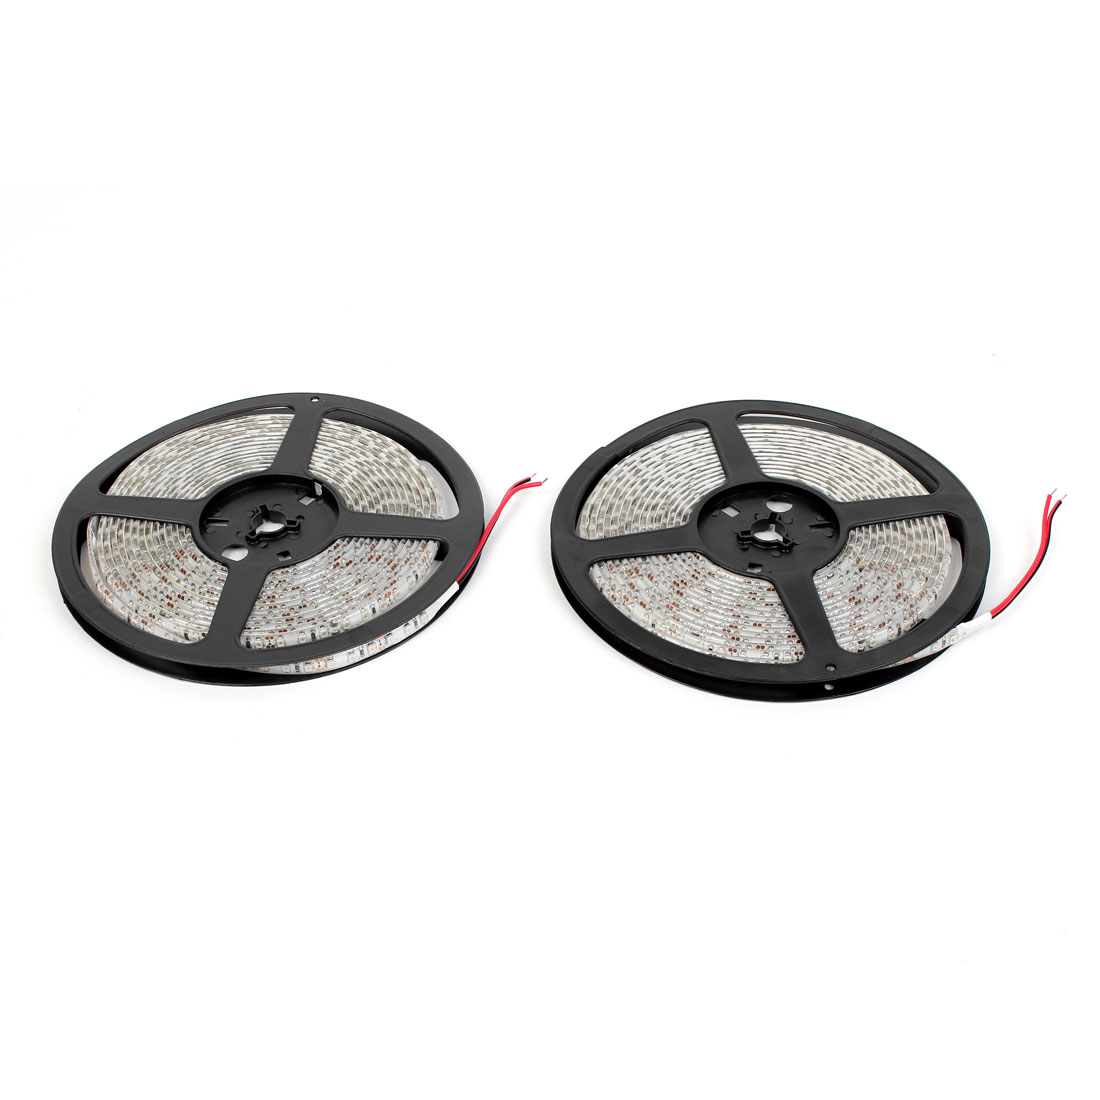 2PCS DC 12V Red 3528 SMD 600 LEDs Waterproof Flexible LED Strip Light 5M